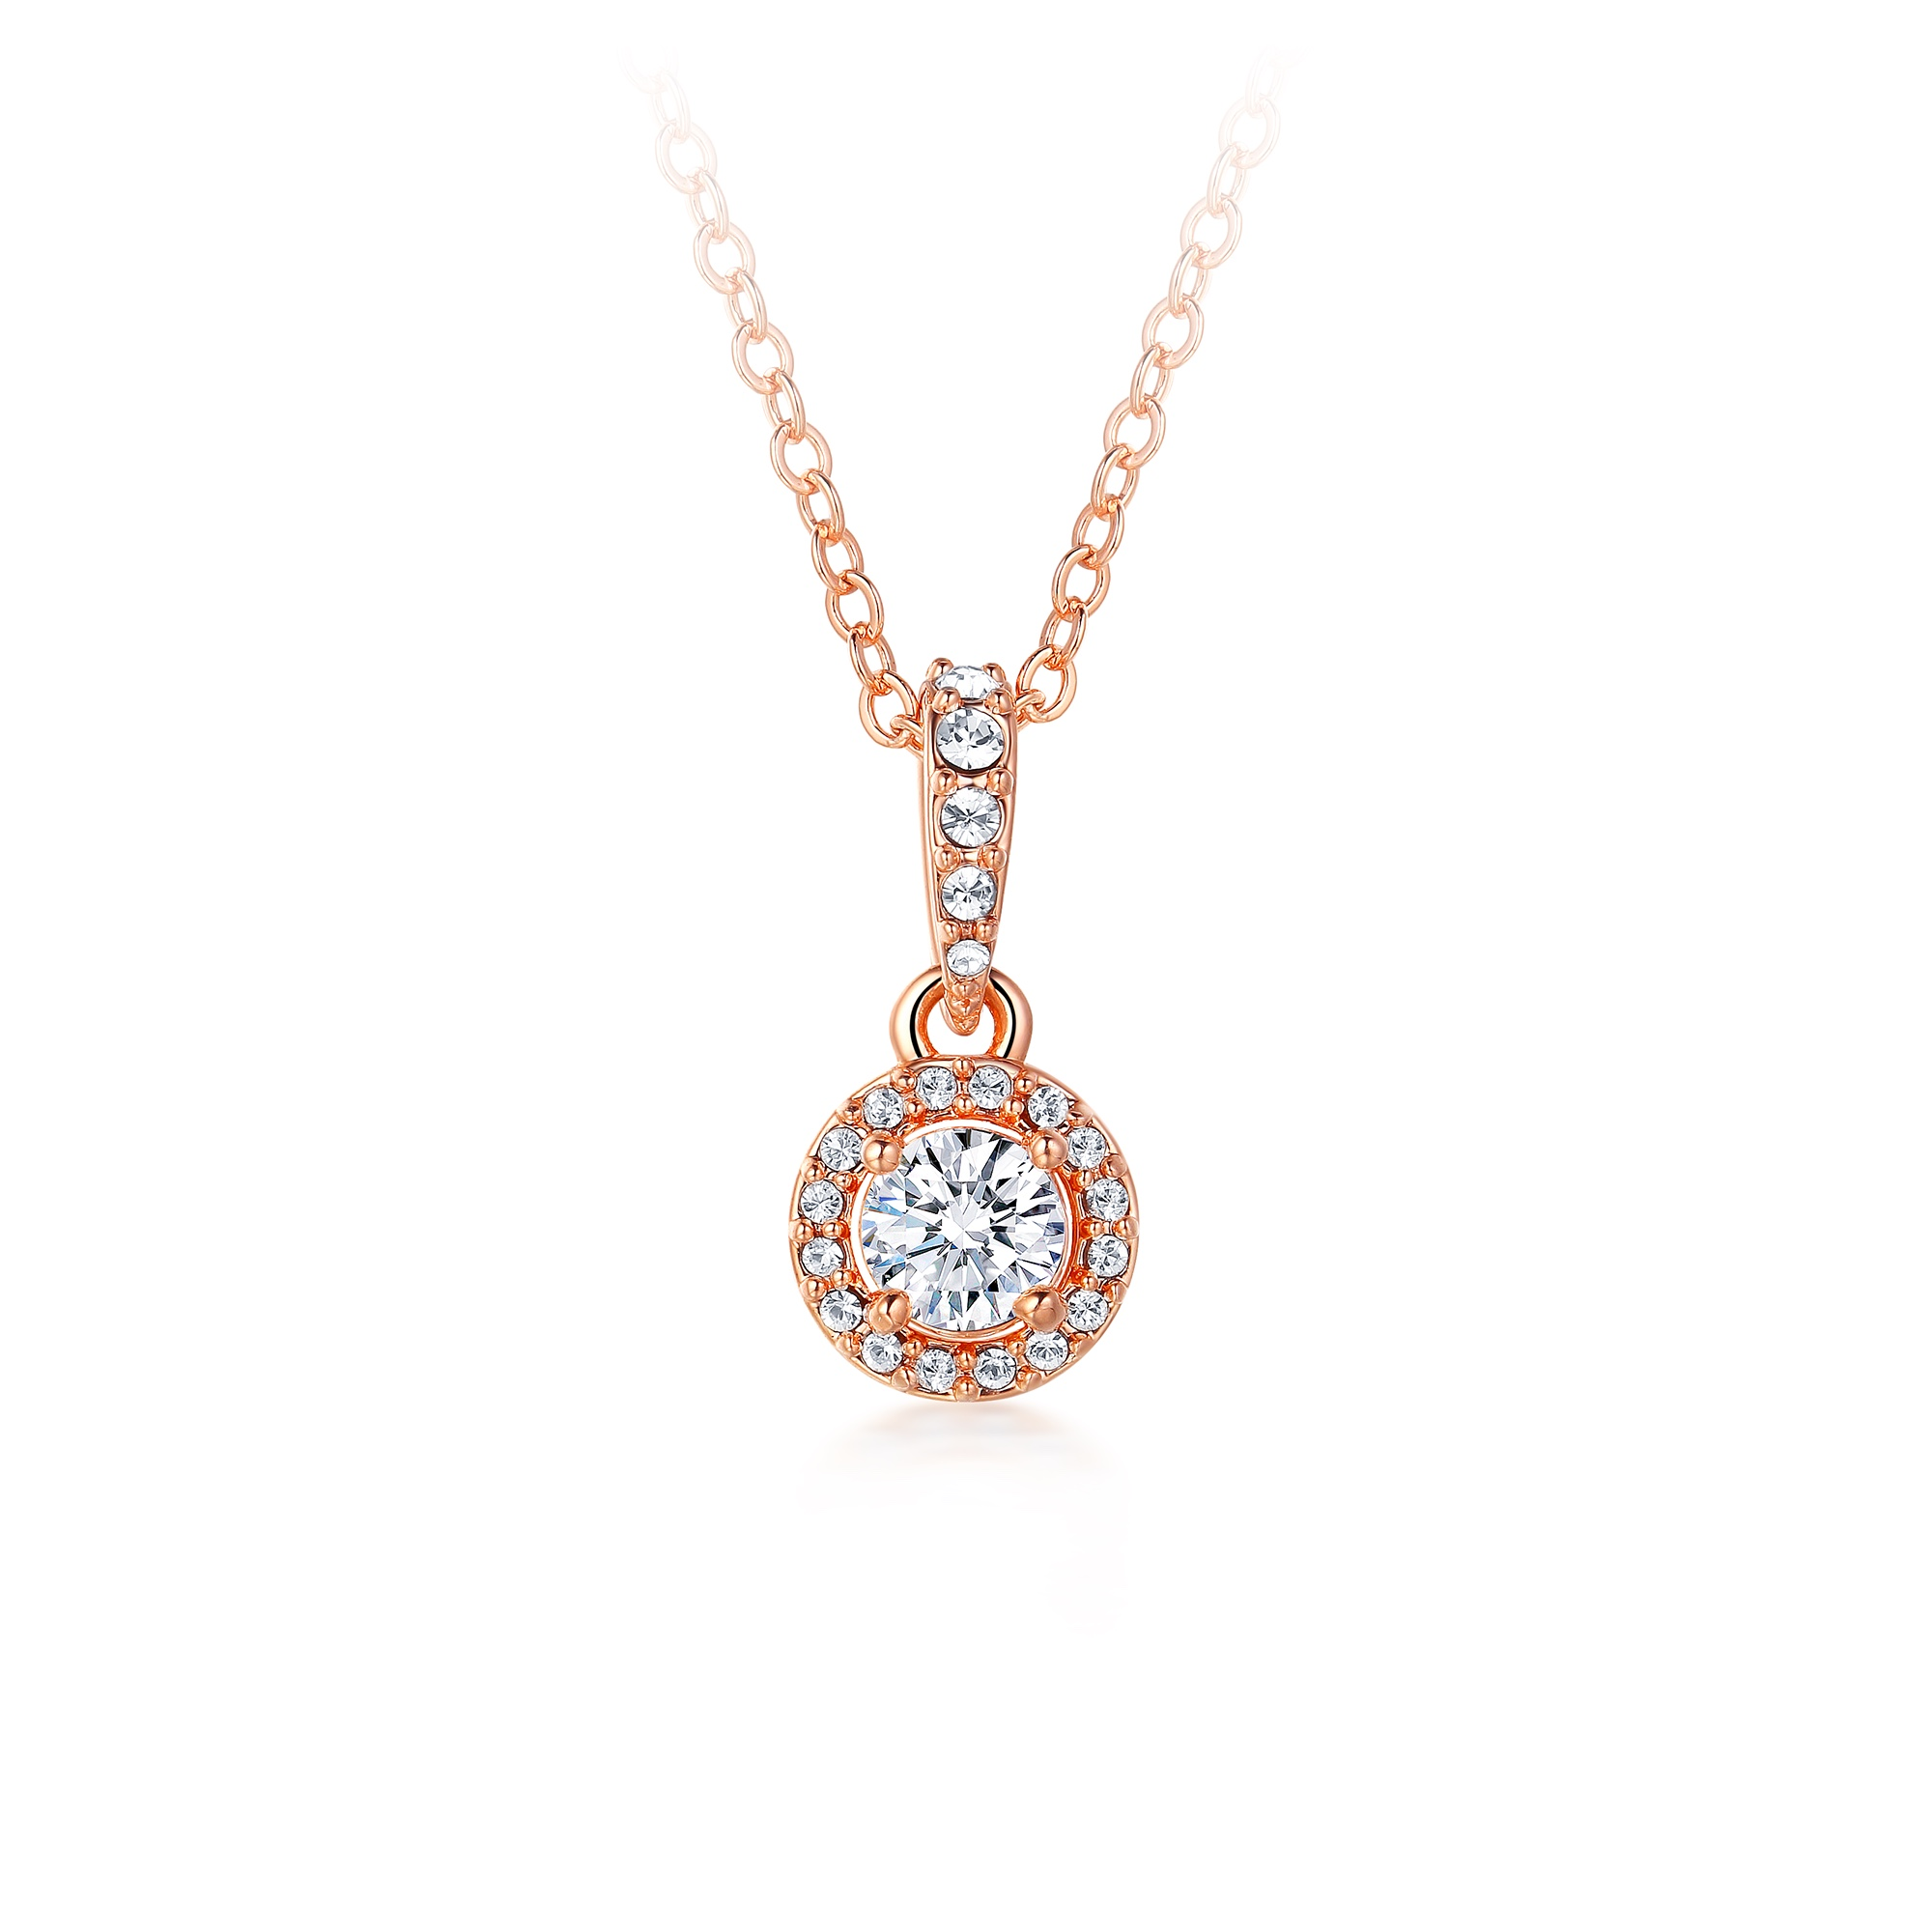 663b2d3d266a6 Details about Elegance Drop Necklace Round Cut CZ Swarovski Crystals Rose  Gold Pt Pendant